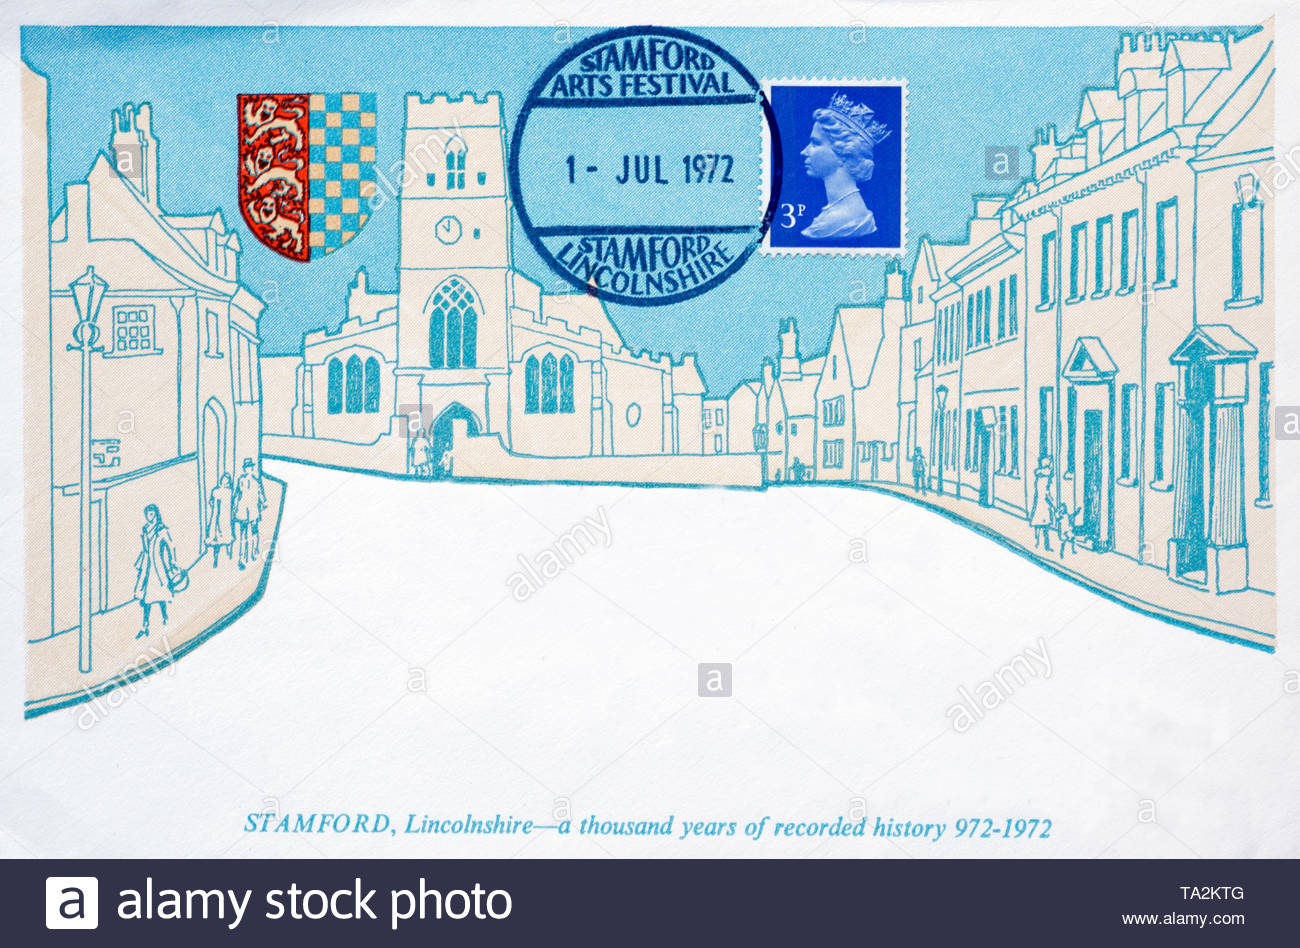 Post Office First Day Cover 1972, Stamford Arts Festival, a thousand years of recorded history - Stock Image